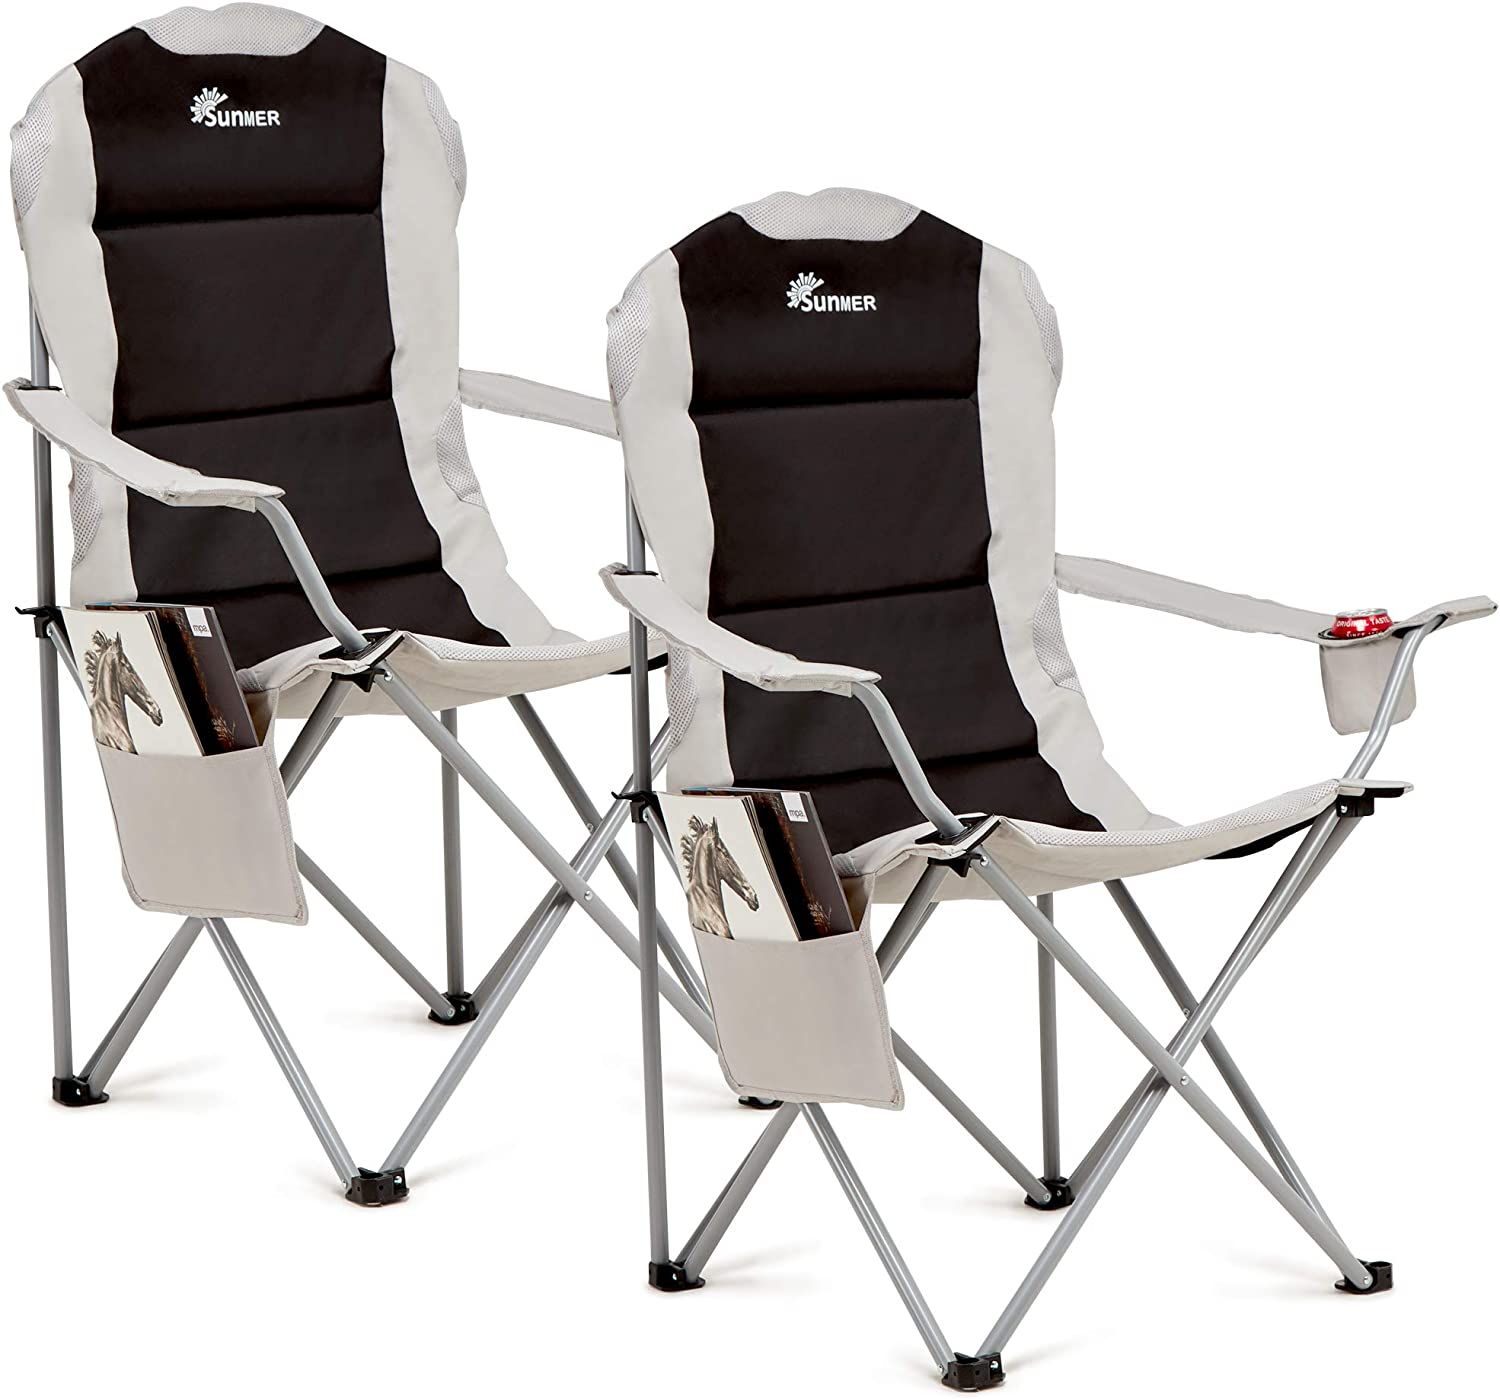 SUNMER Set Of 2 Folding Deluxe Padded Camping Chairs With Cup Holder And Side Pocket Black & Grey